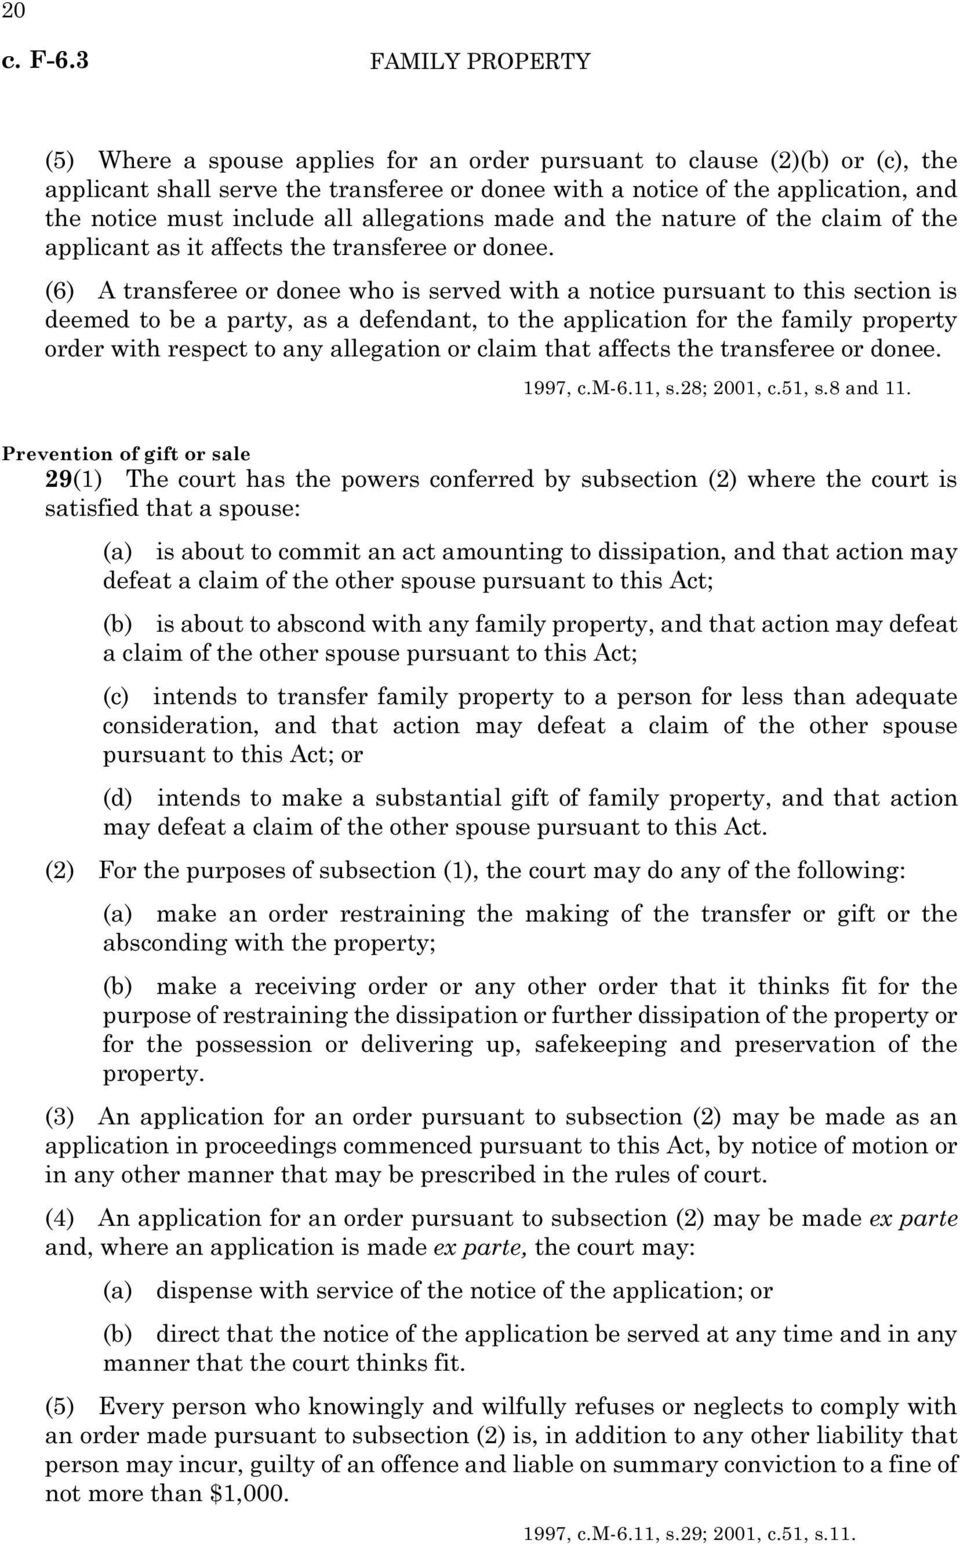 (6) A transferee or donee who is served with a notice pursuant to this section is deemed to be a party, as a defendant, to the application for the family property order with respect to any allegation